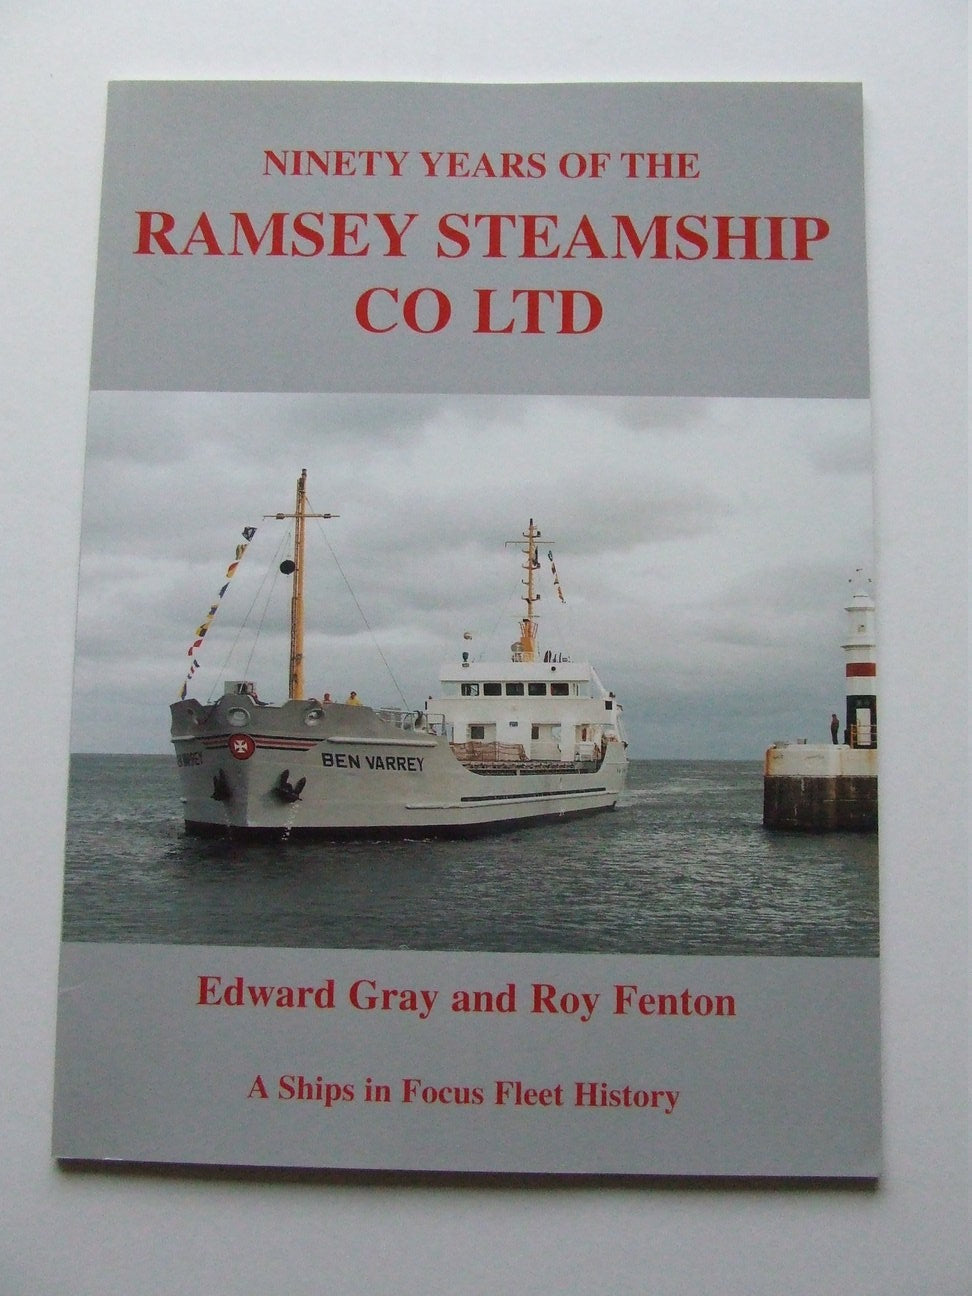 Ninety Years of the Ramsey Steamship Co. Ltd.